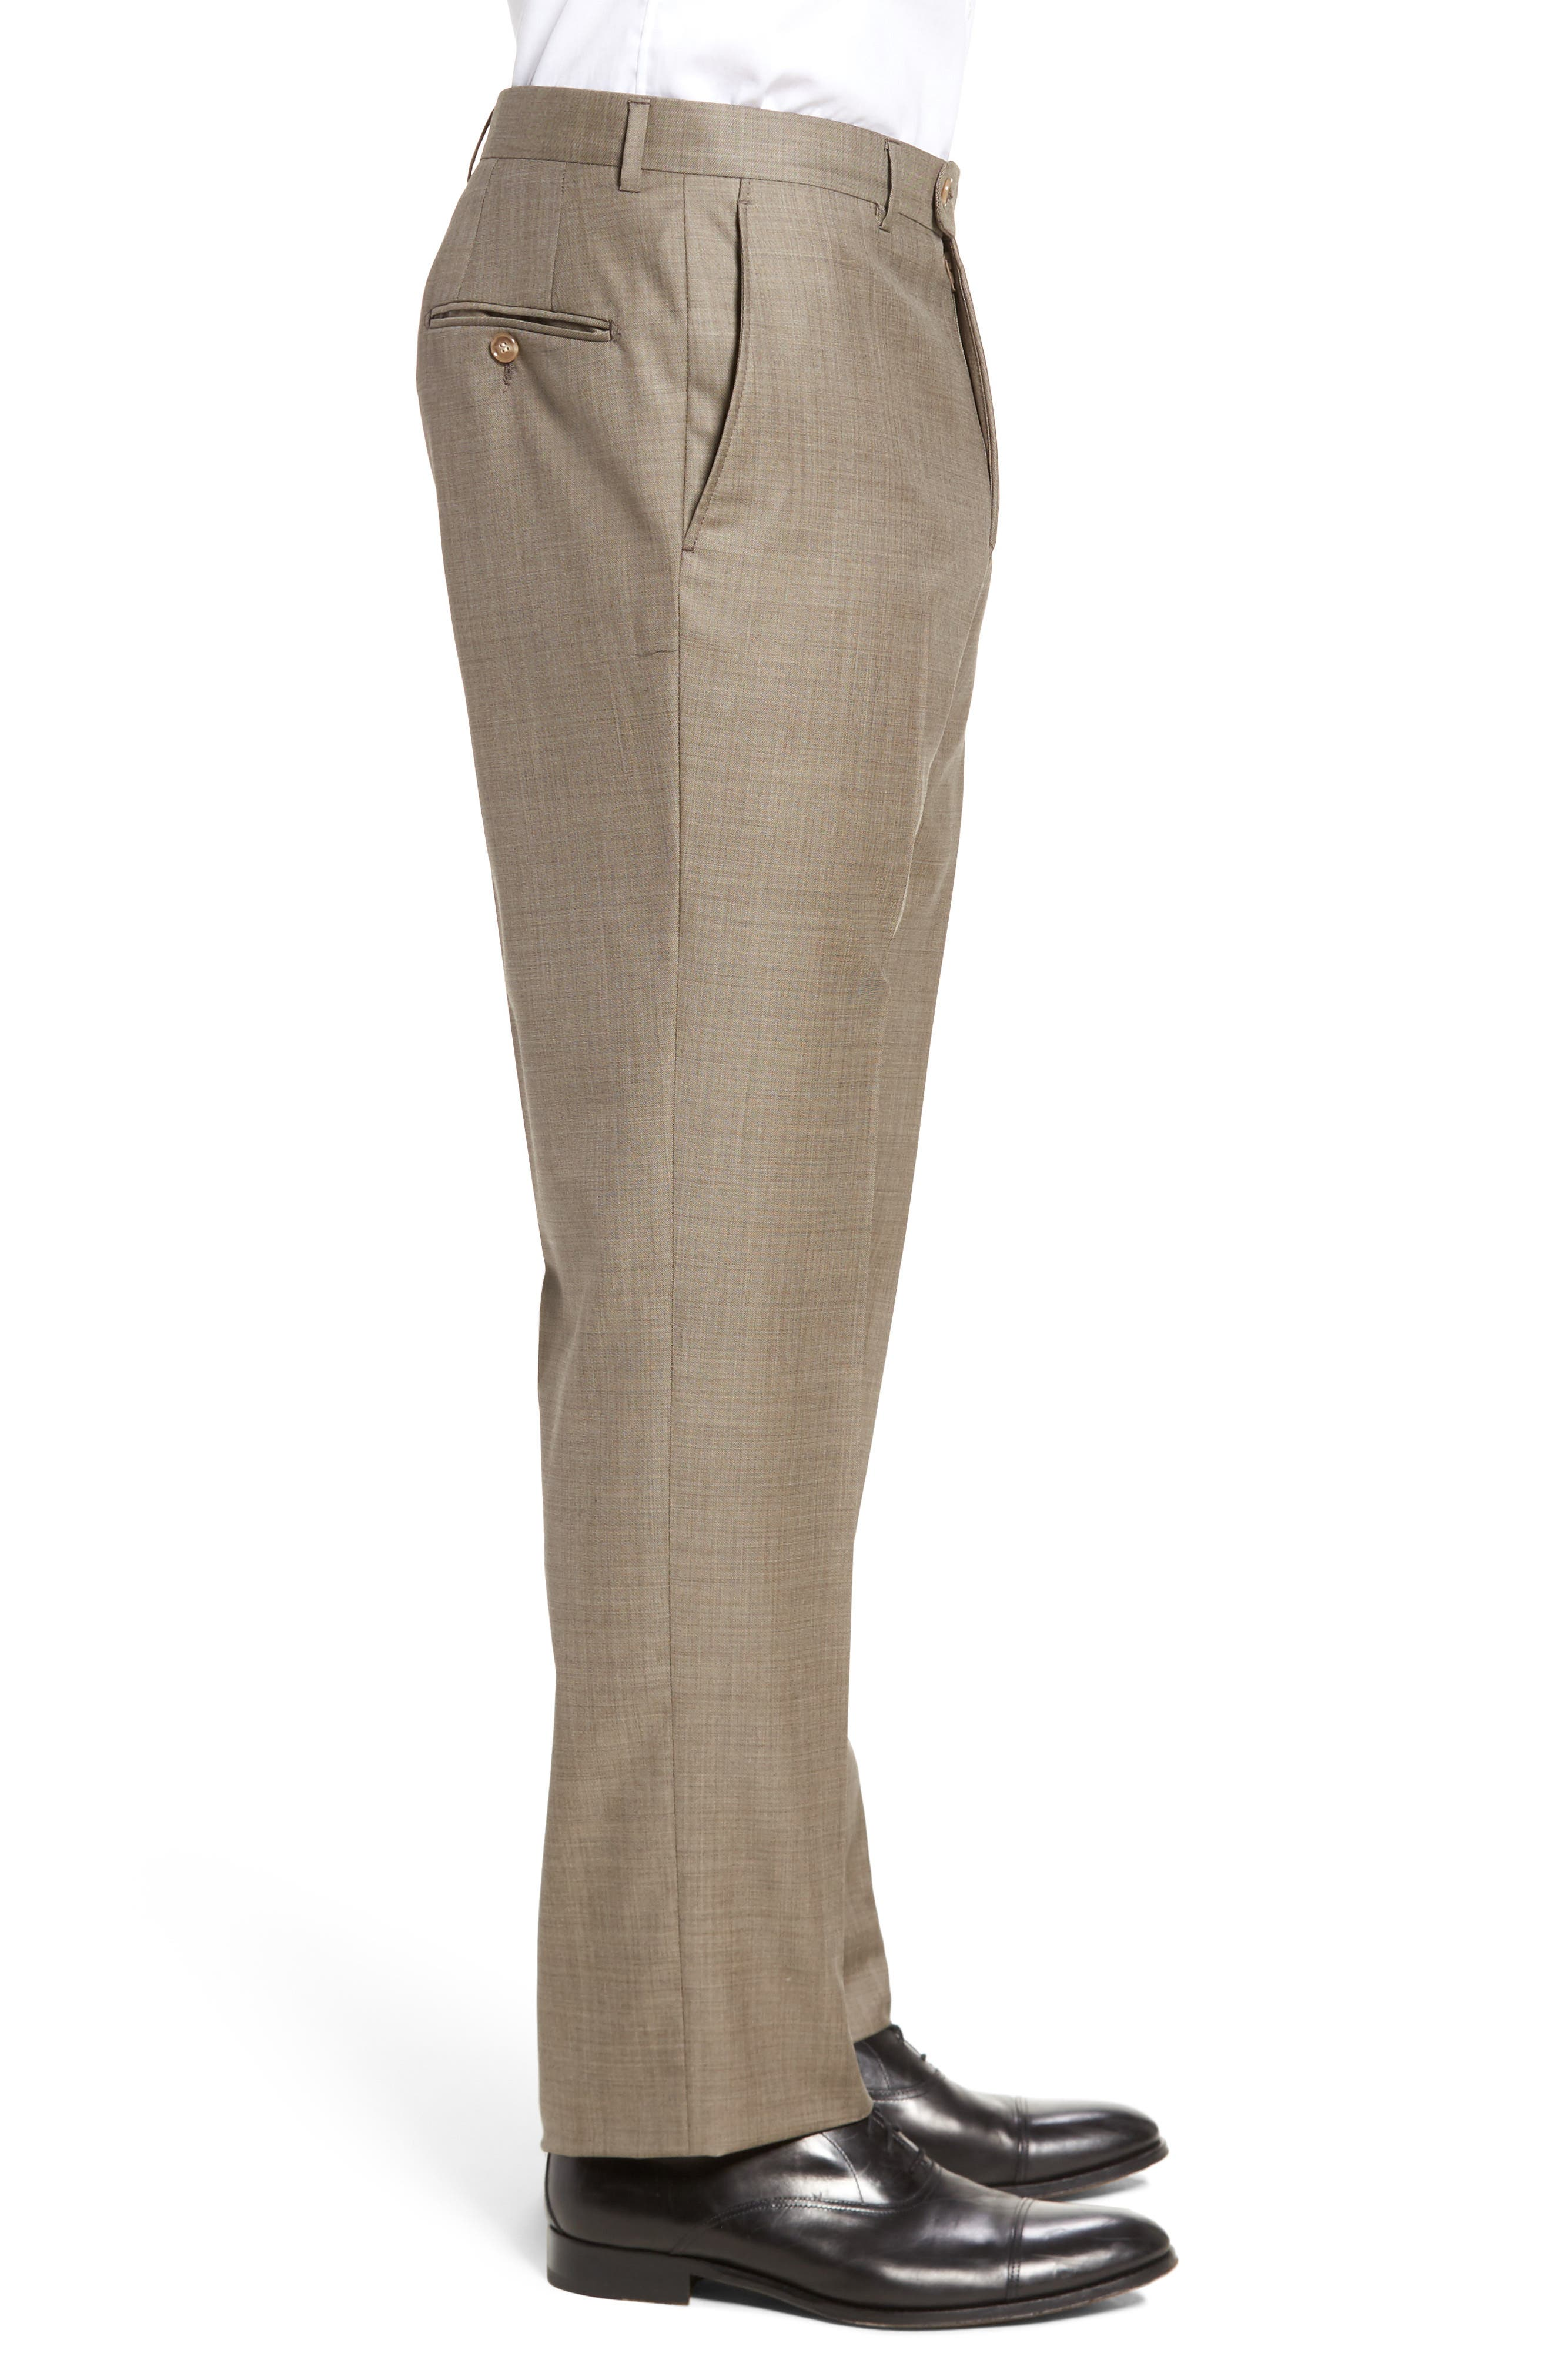 Classic B Fit Flat Front Solid Wool Trousers,                             Alternate thumbnail 4, color,                             TAN SHARKSKIN